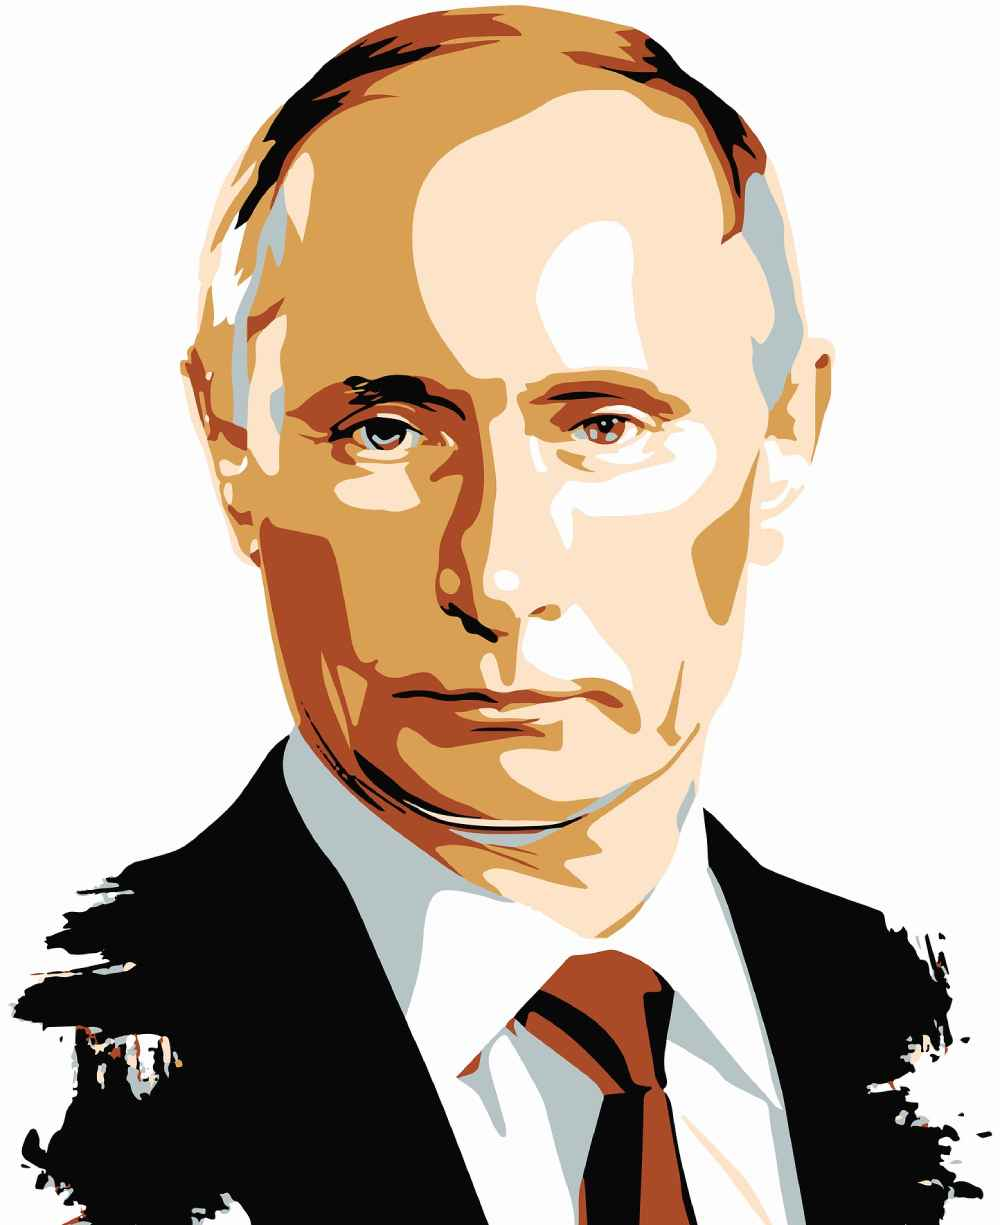 portrait of putin, example of icy man style of dominance